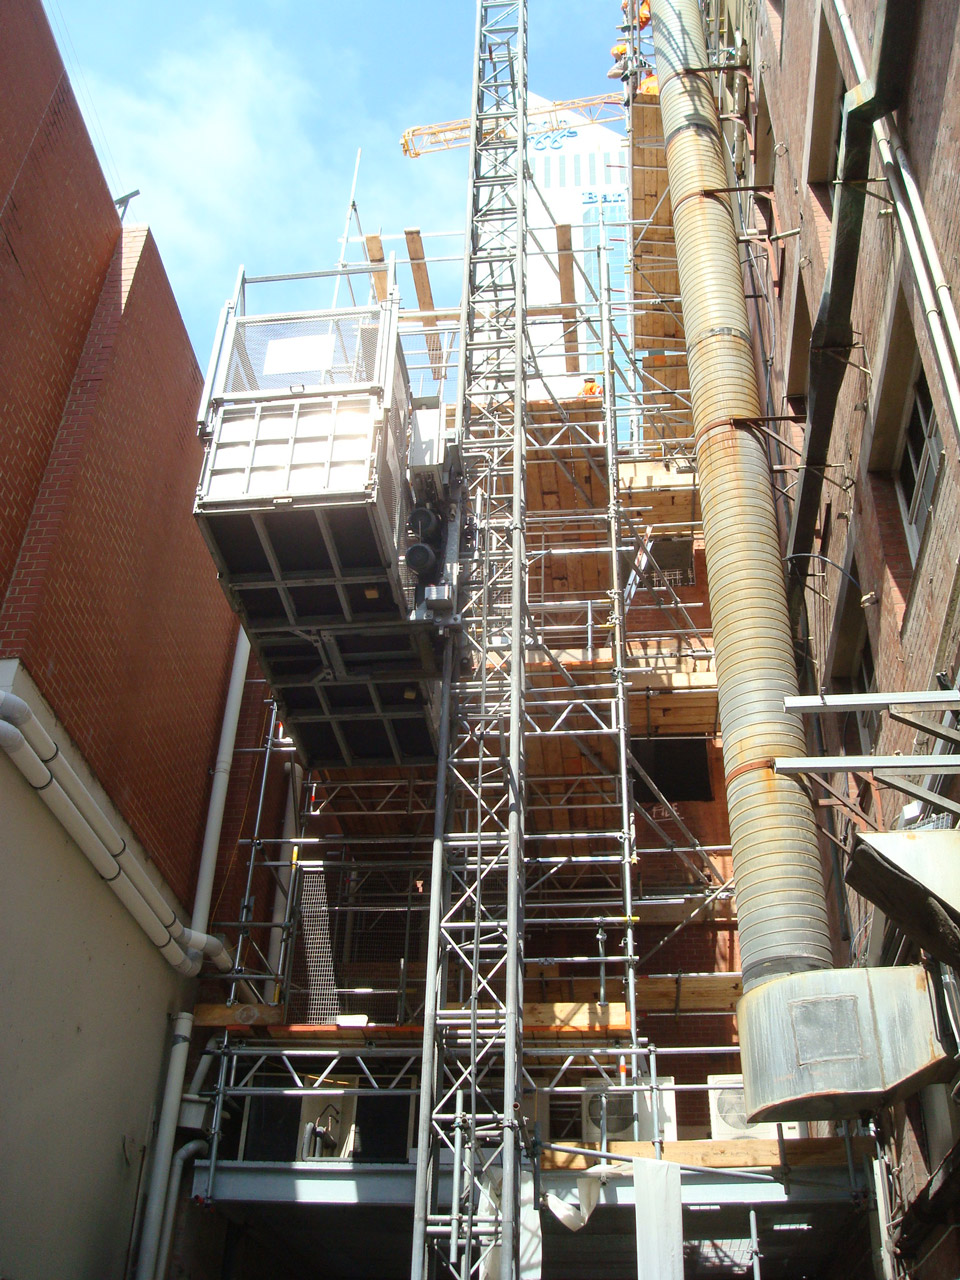 Source: http://www.gedausa.com/material-hoists-material-lifts.html